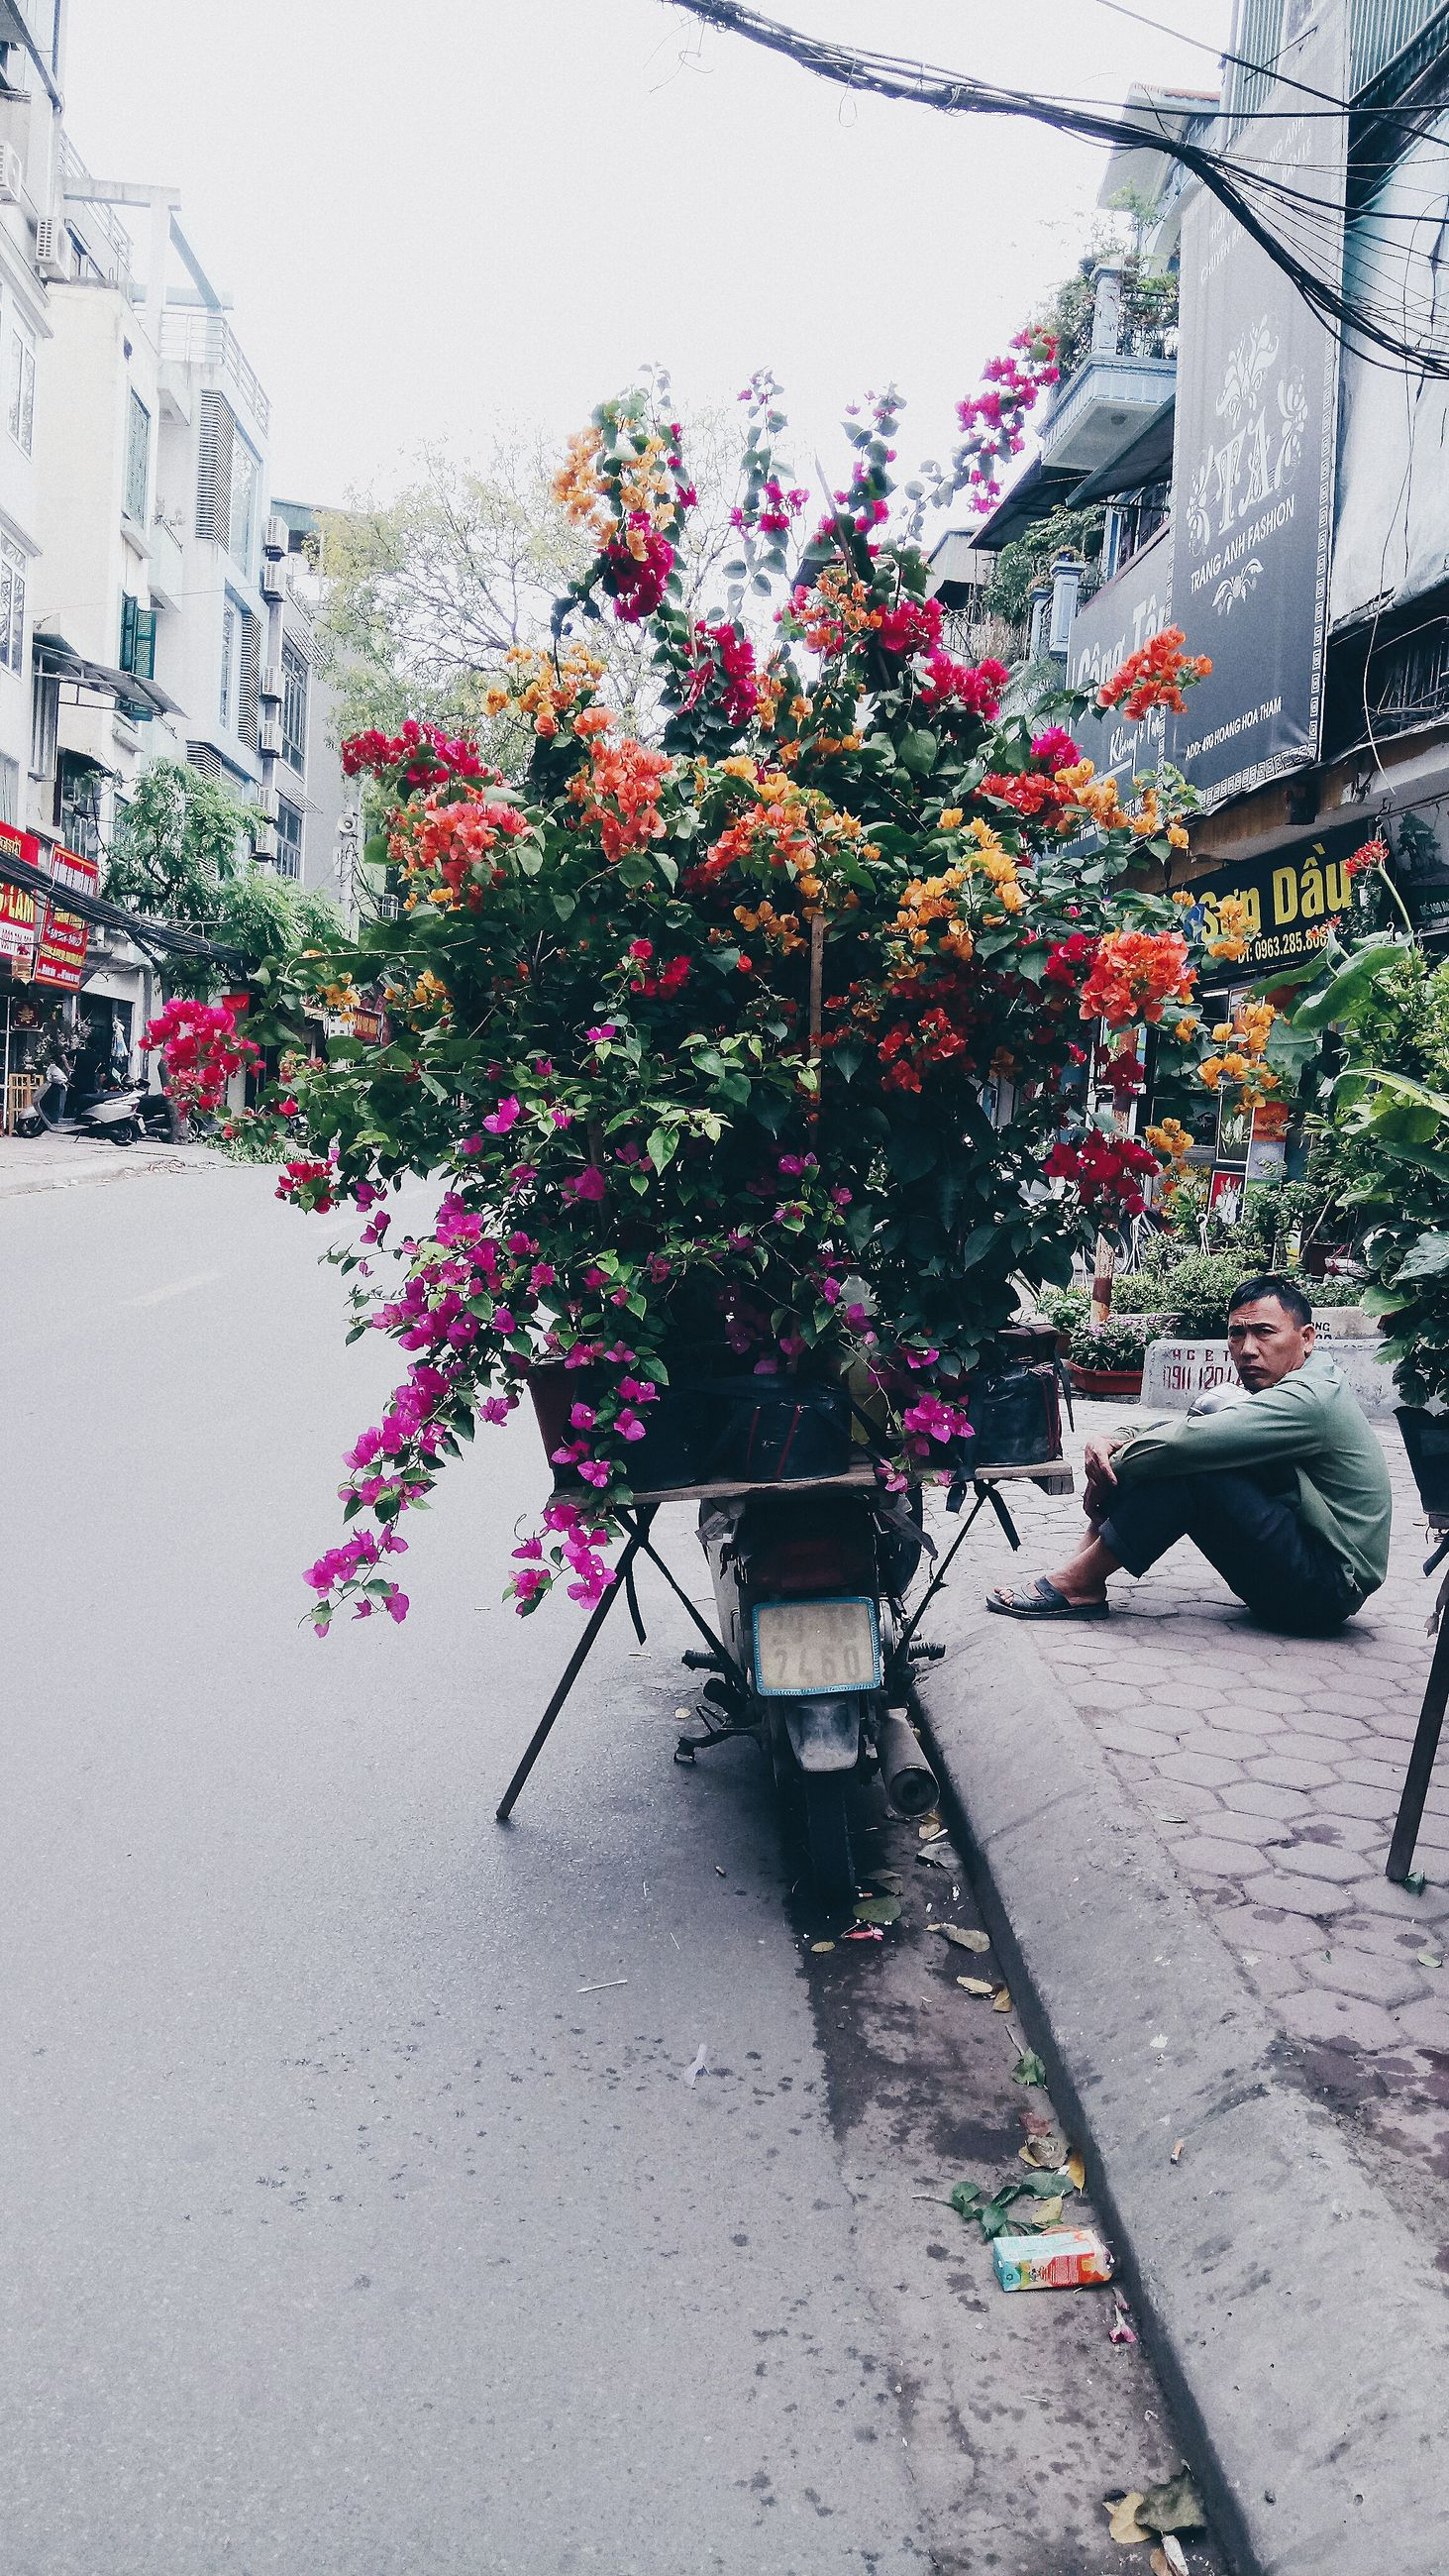 flower, building exterior, architecture, real people, built structure, street, men, land vehicle, outdoors, transportation, day, plant, one person, growth, city, nature, lifestyles, road, tree, women, freshness, full length, clear sky, window box, florist, people